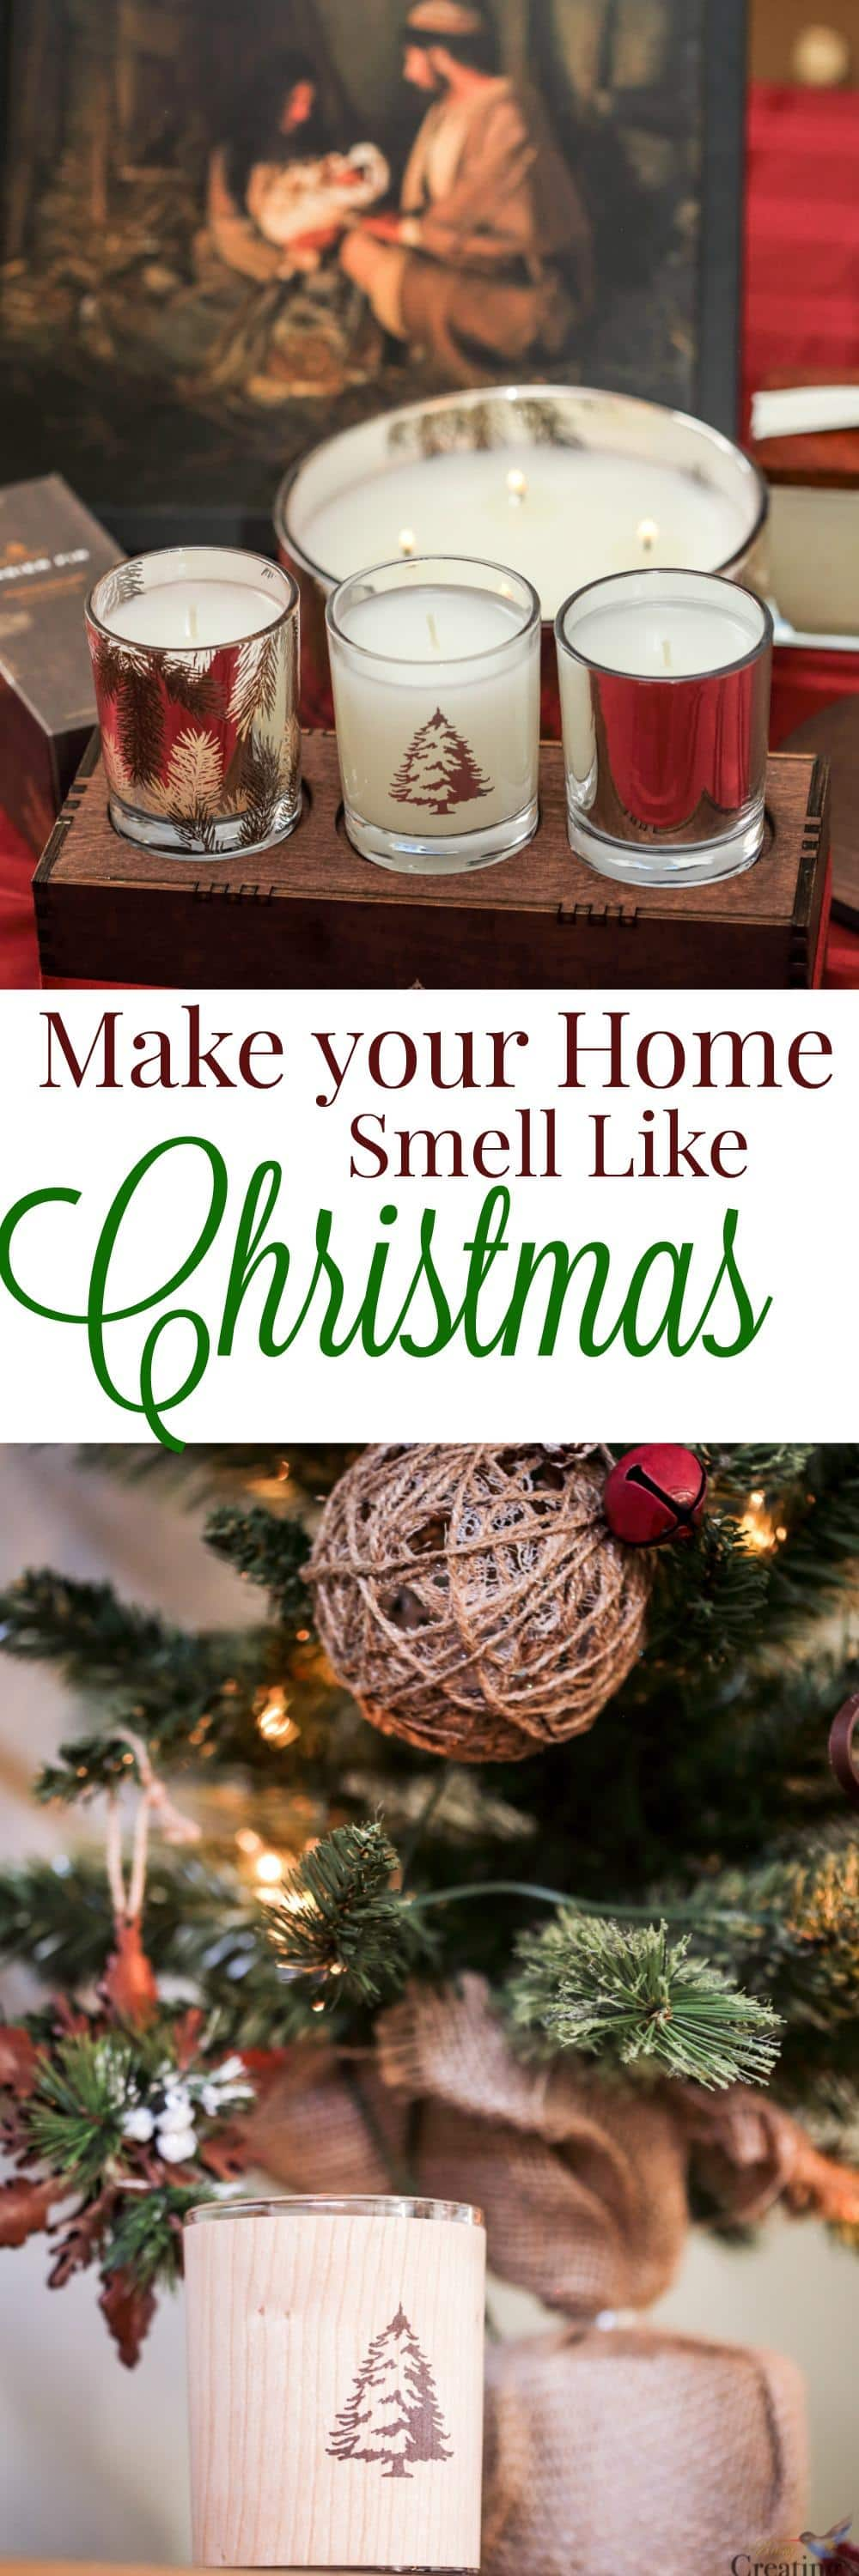 The best scent of Christmas is the Christmas Tree fragrance. With Thymes Frasier Fir candles you can make your home Smell like Christmas without the mess!